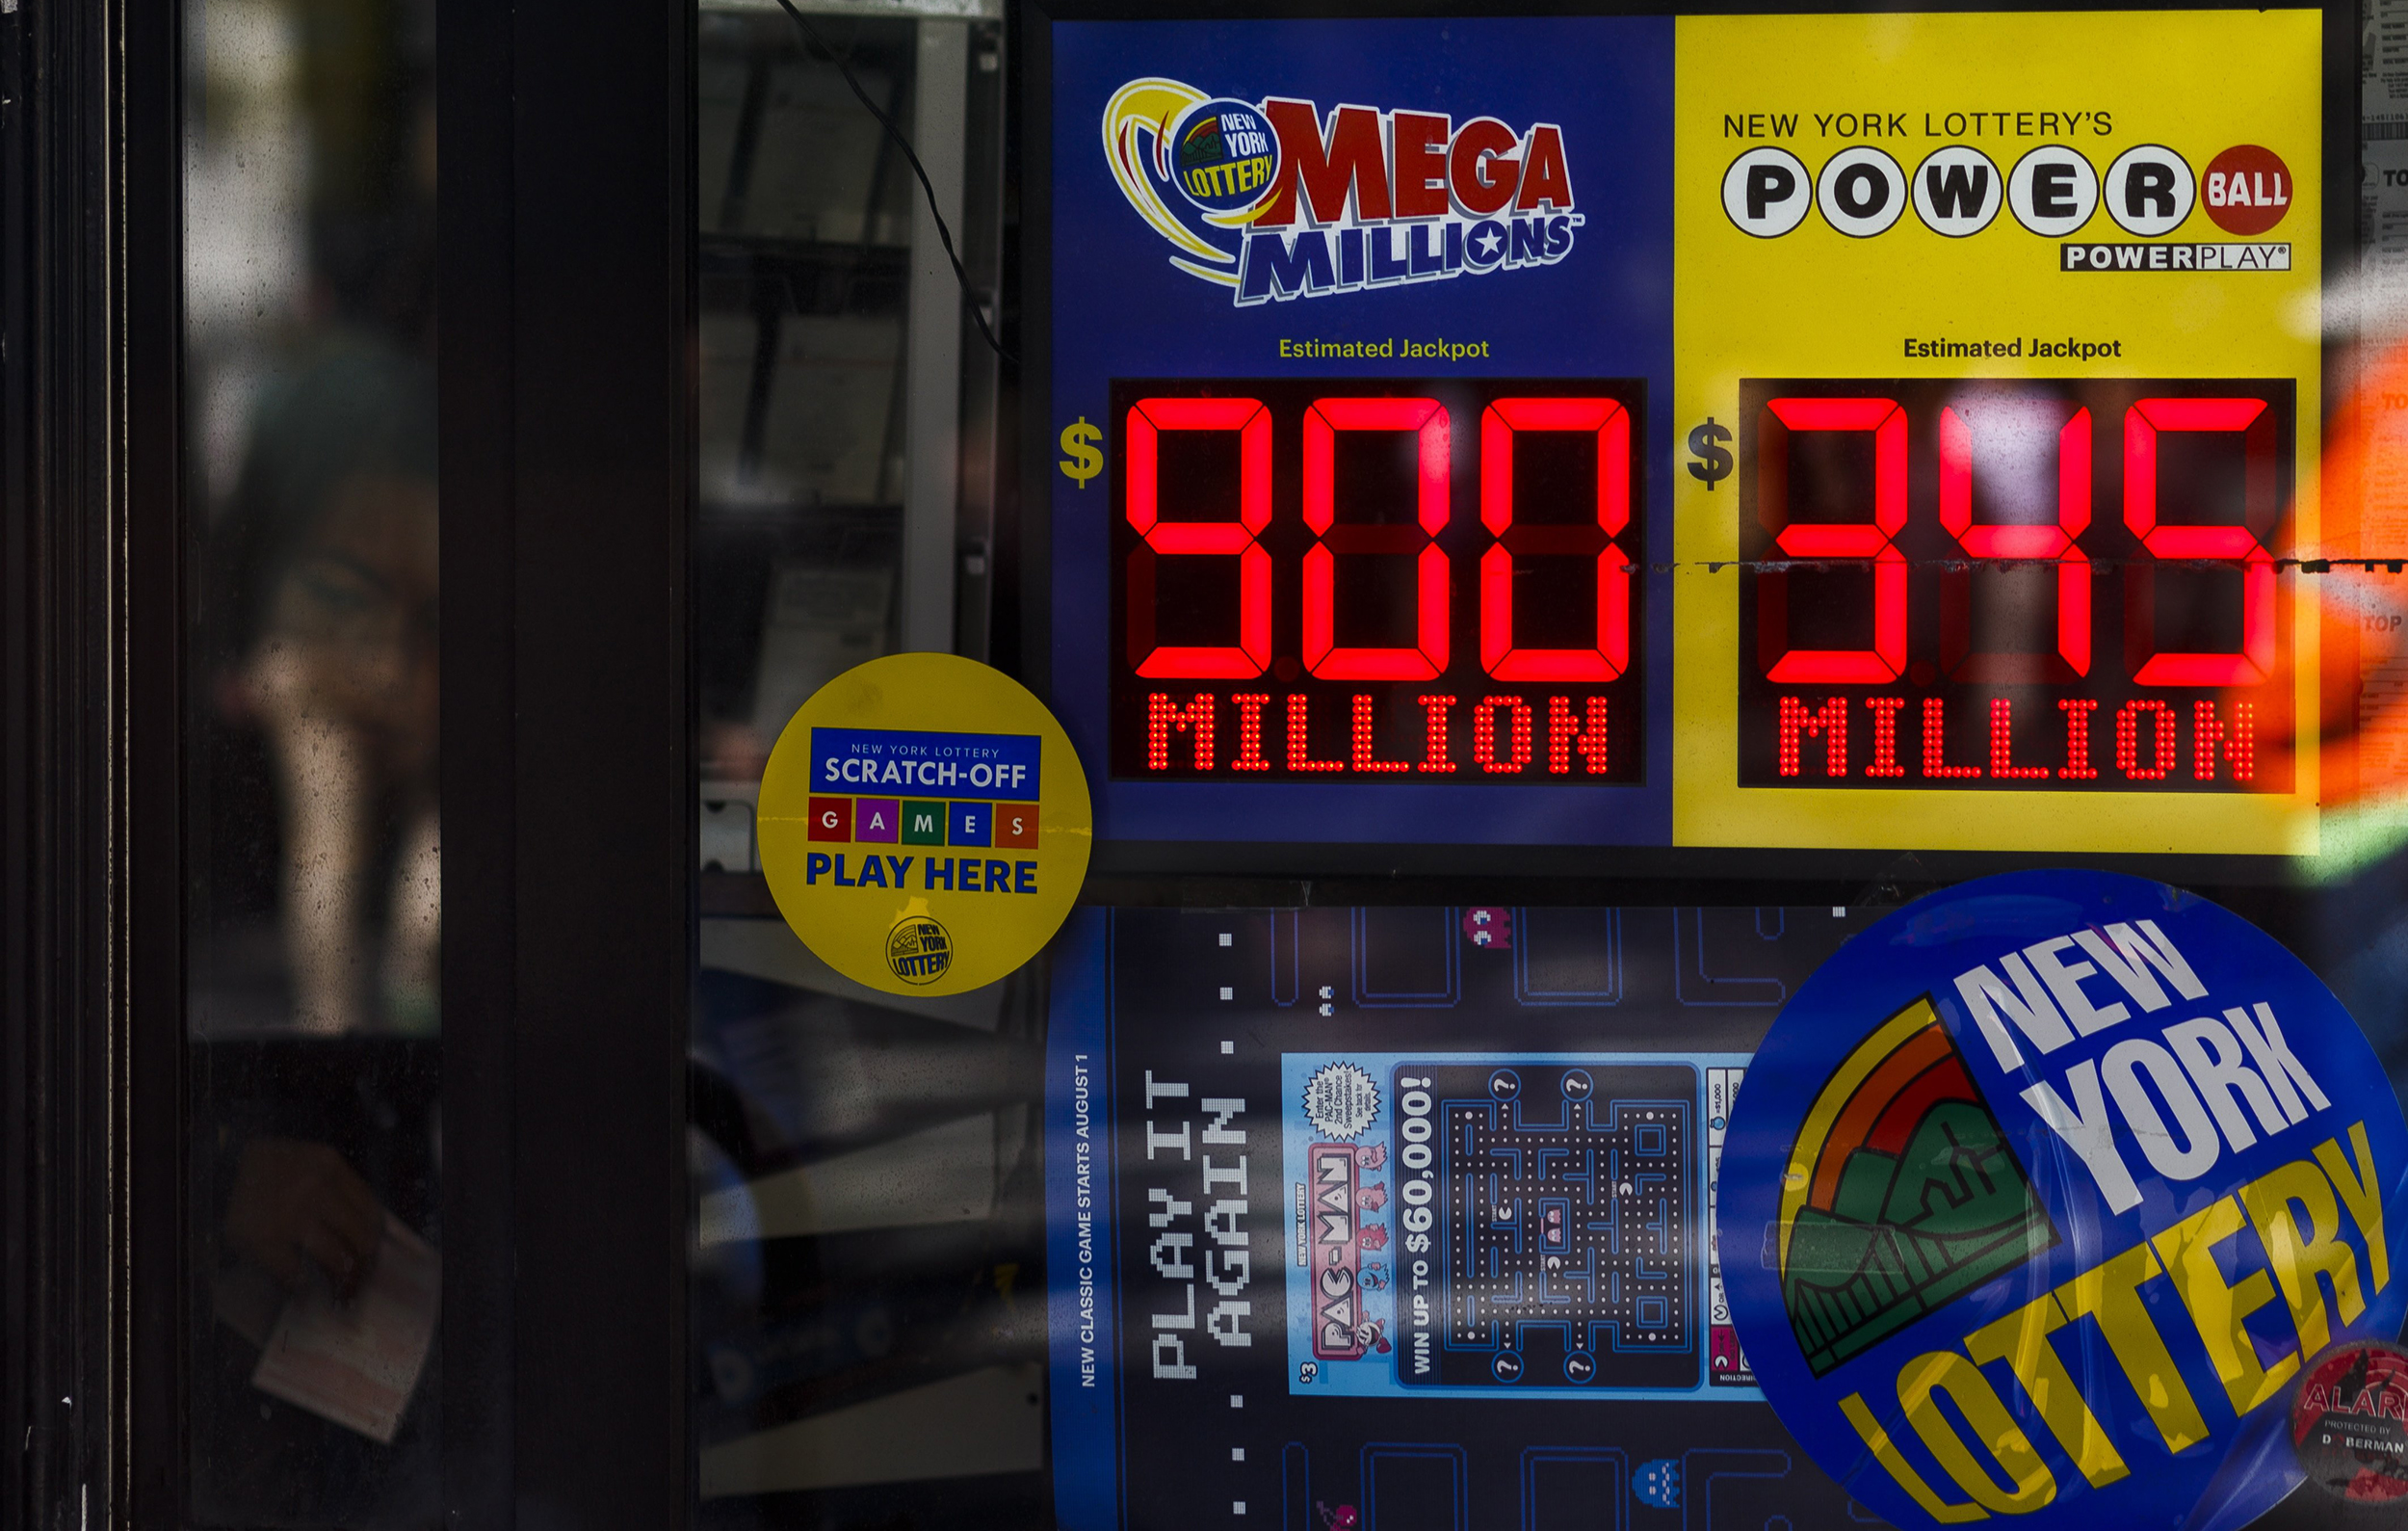 Hoping to cash in on the Mega Millions jackpot? Here's why winning